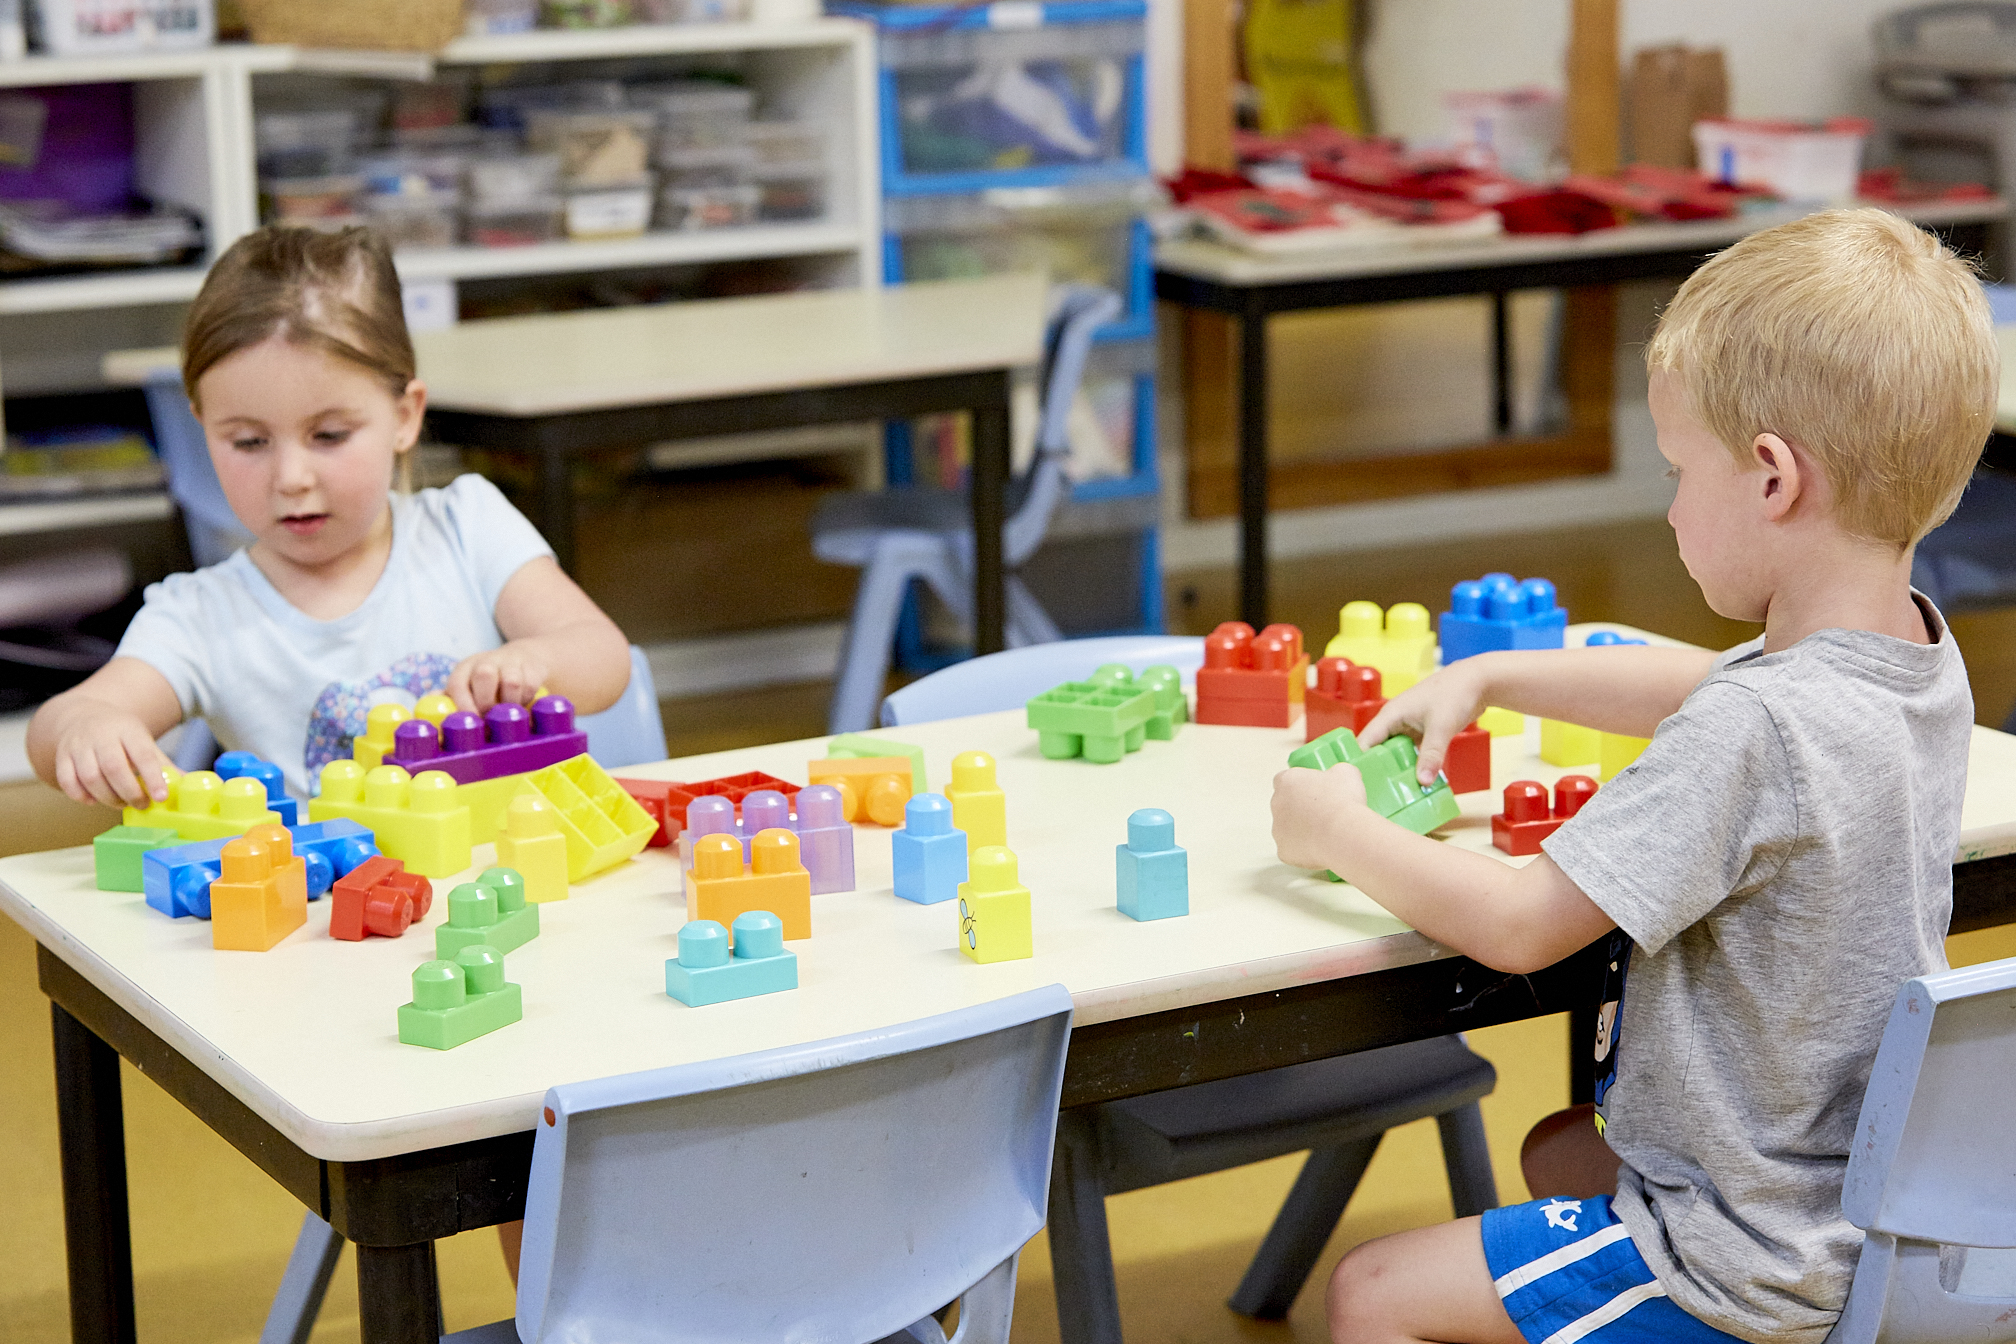 Children playing with building blocks on table in child care classroom